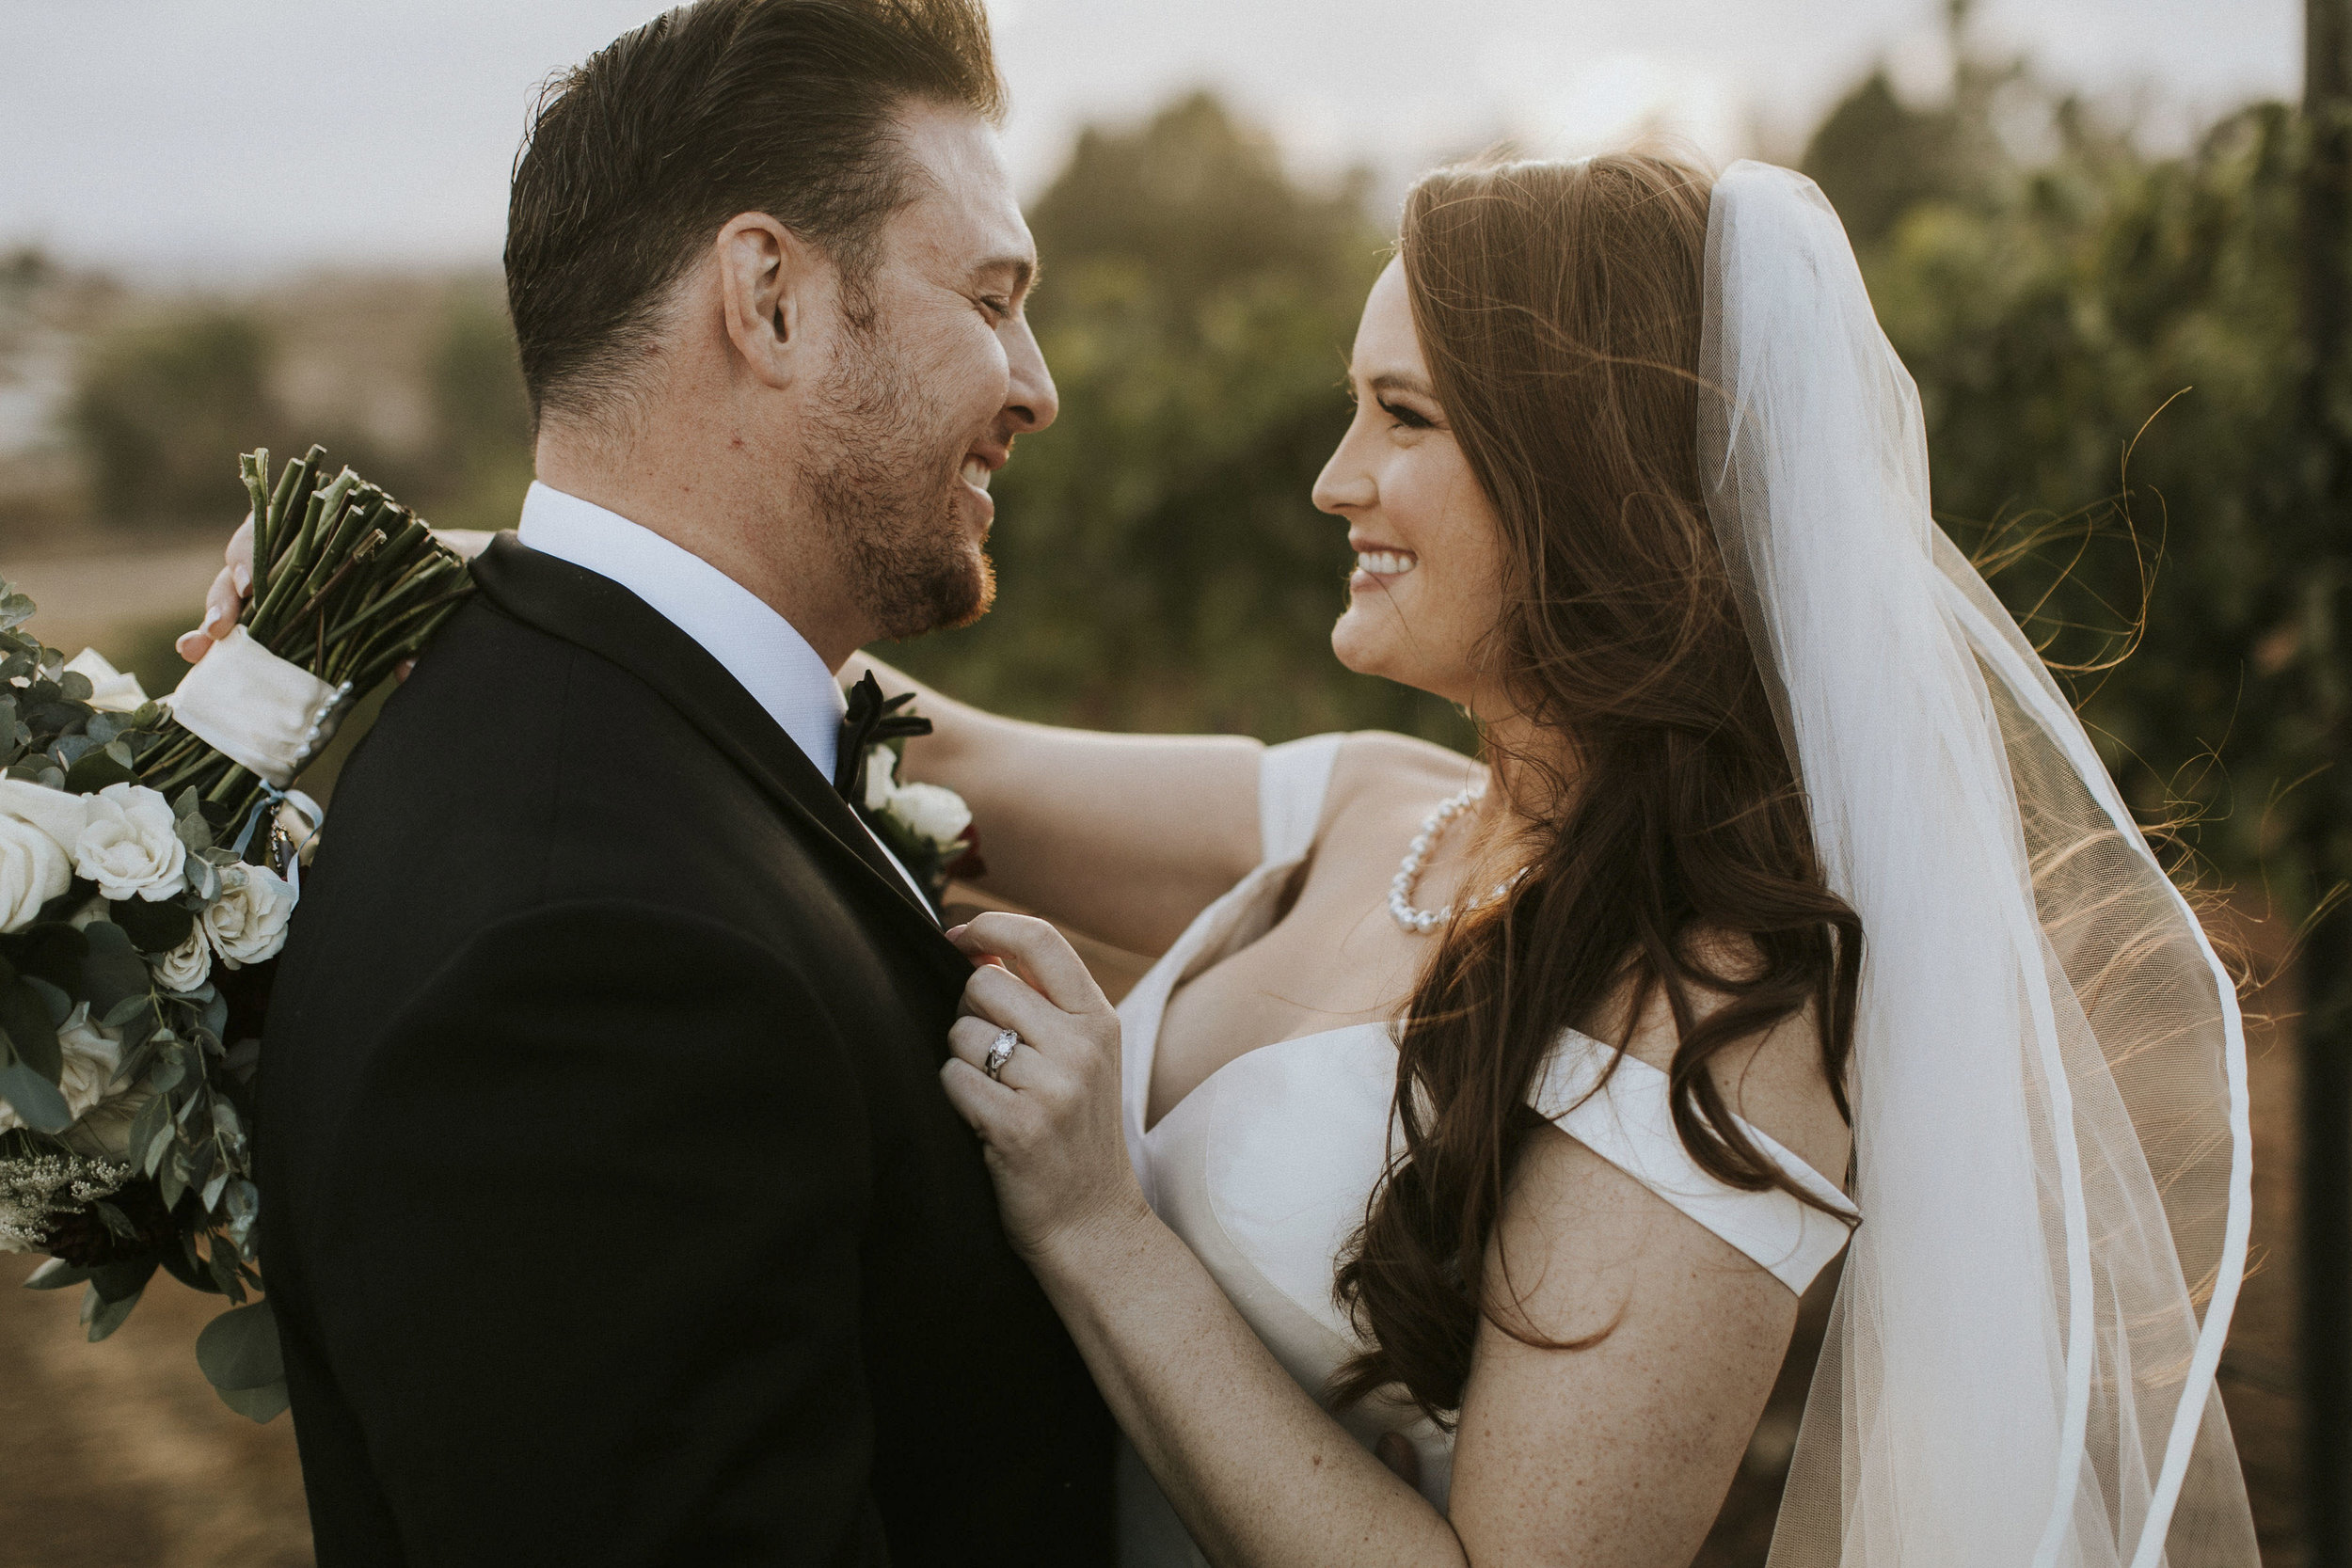 Domenica Beauty _ Hair and Makeup Artist _Wedding _ Temecula, CA _ Catherine and Darryl _ 27.JPG